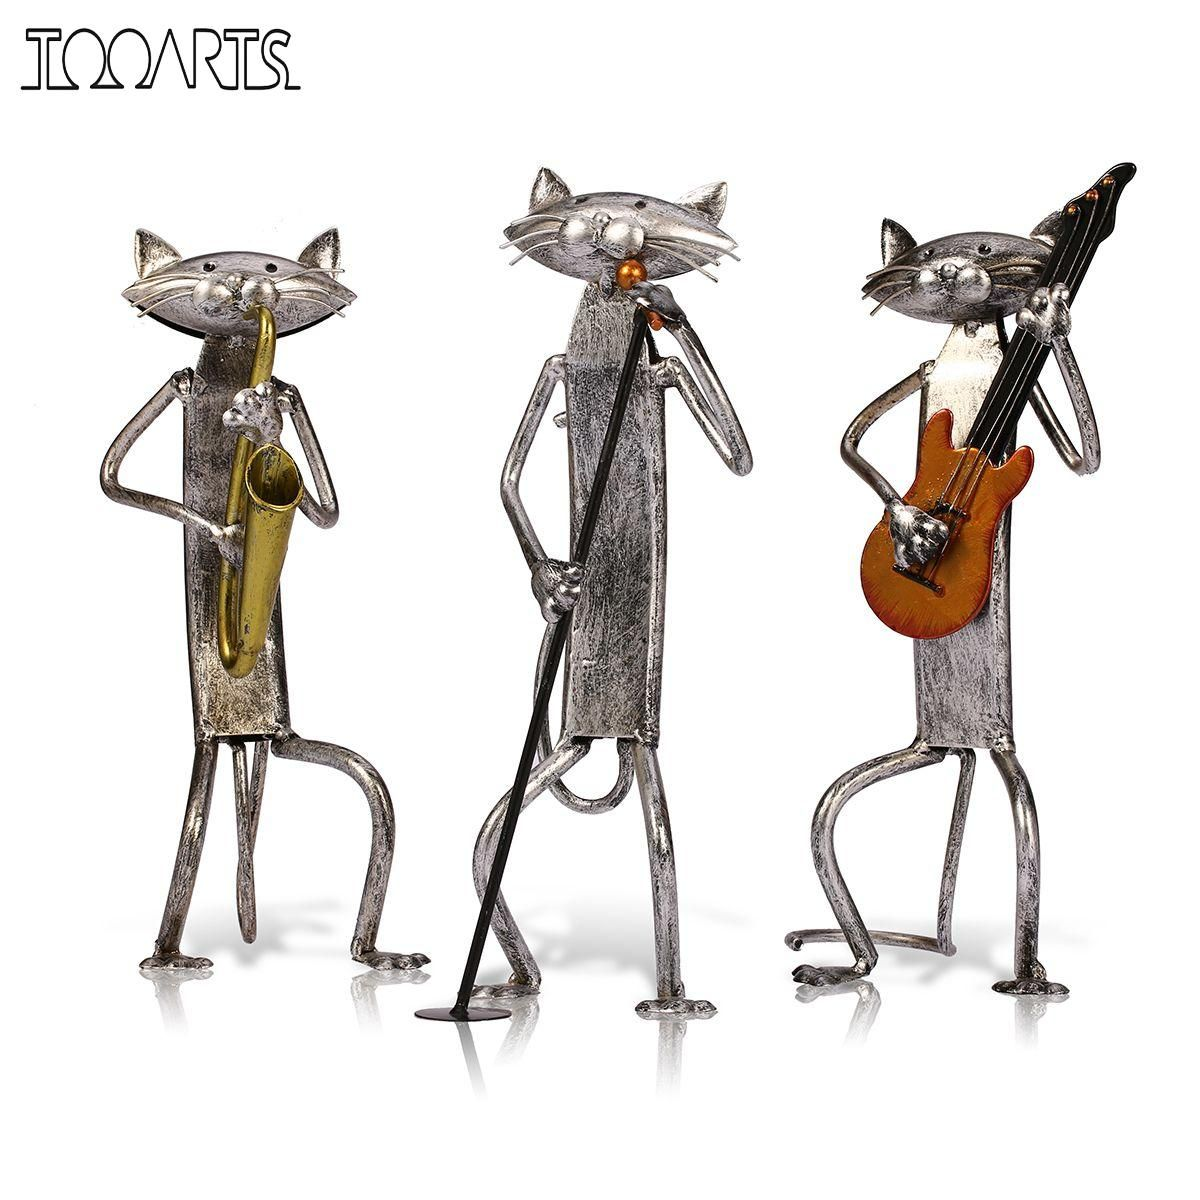 Tooarts Metal Figurine A Playing <font><b>Guitar</b></font>/Saxophone/Singing Cat Figurine Furnishing Articles Craft Gift For Home Decoration